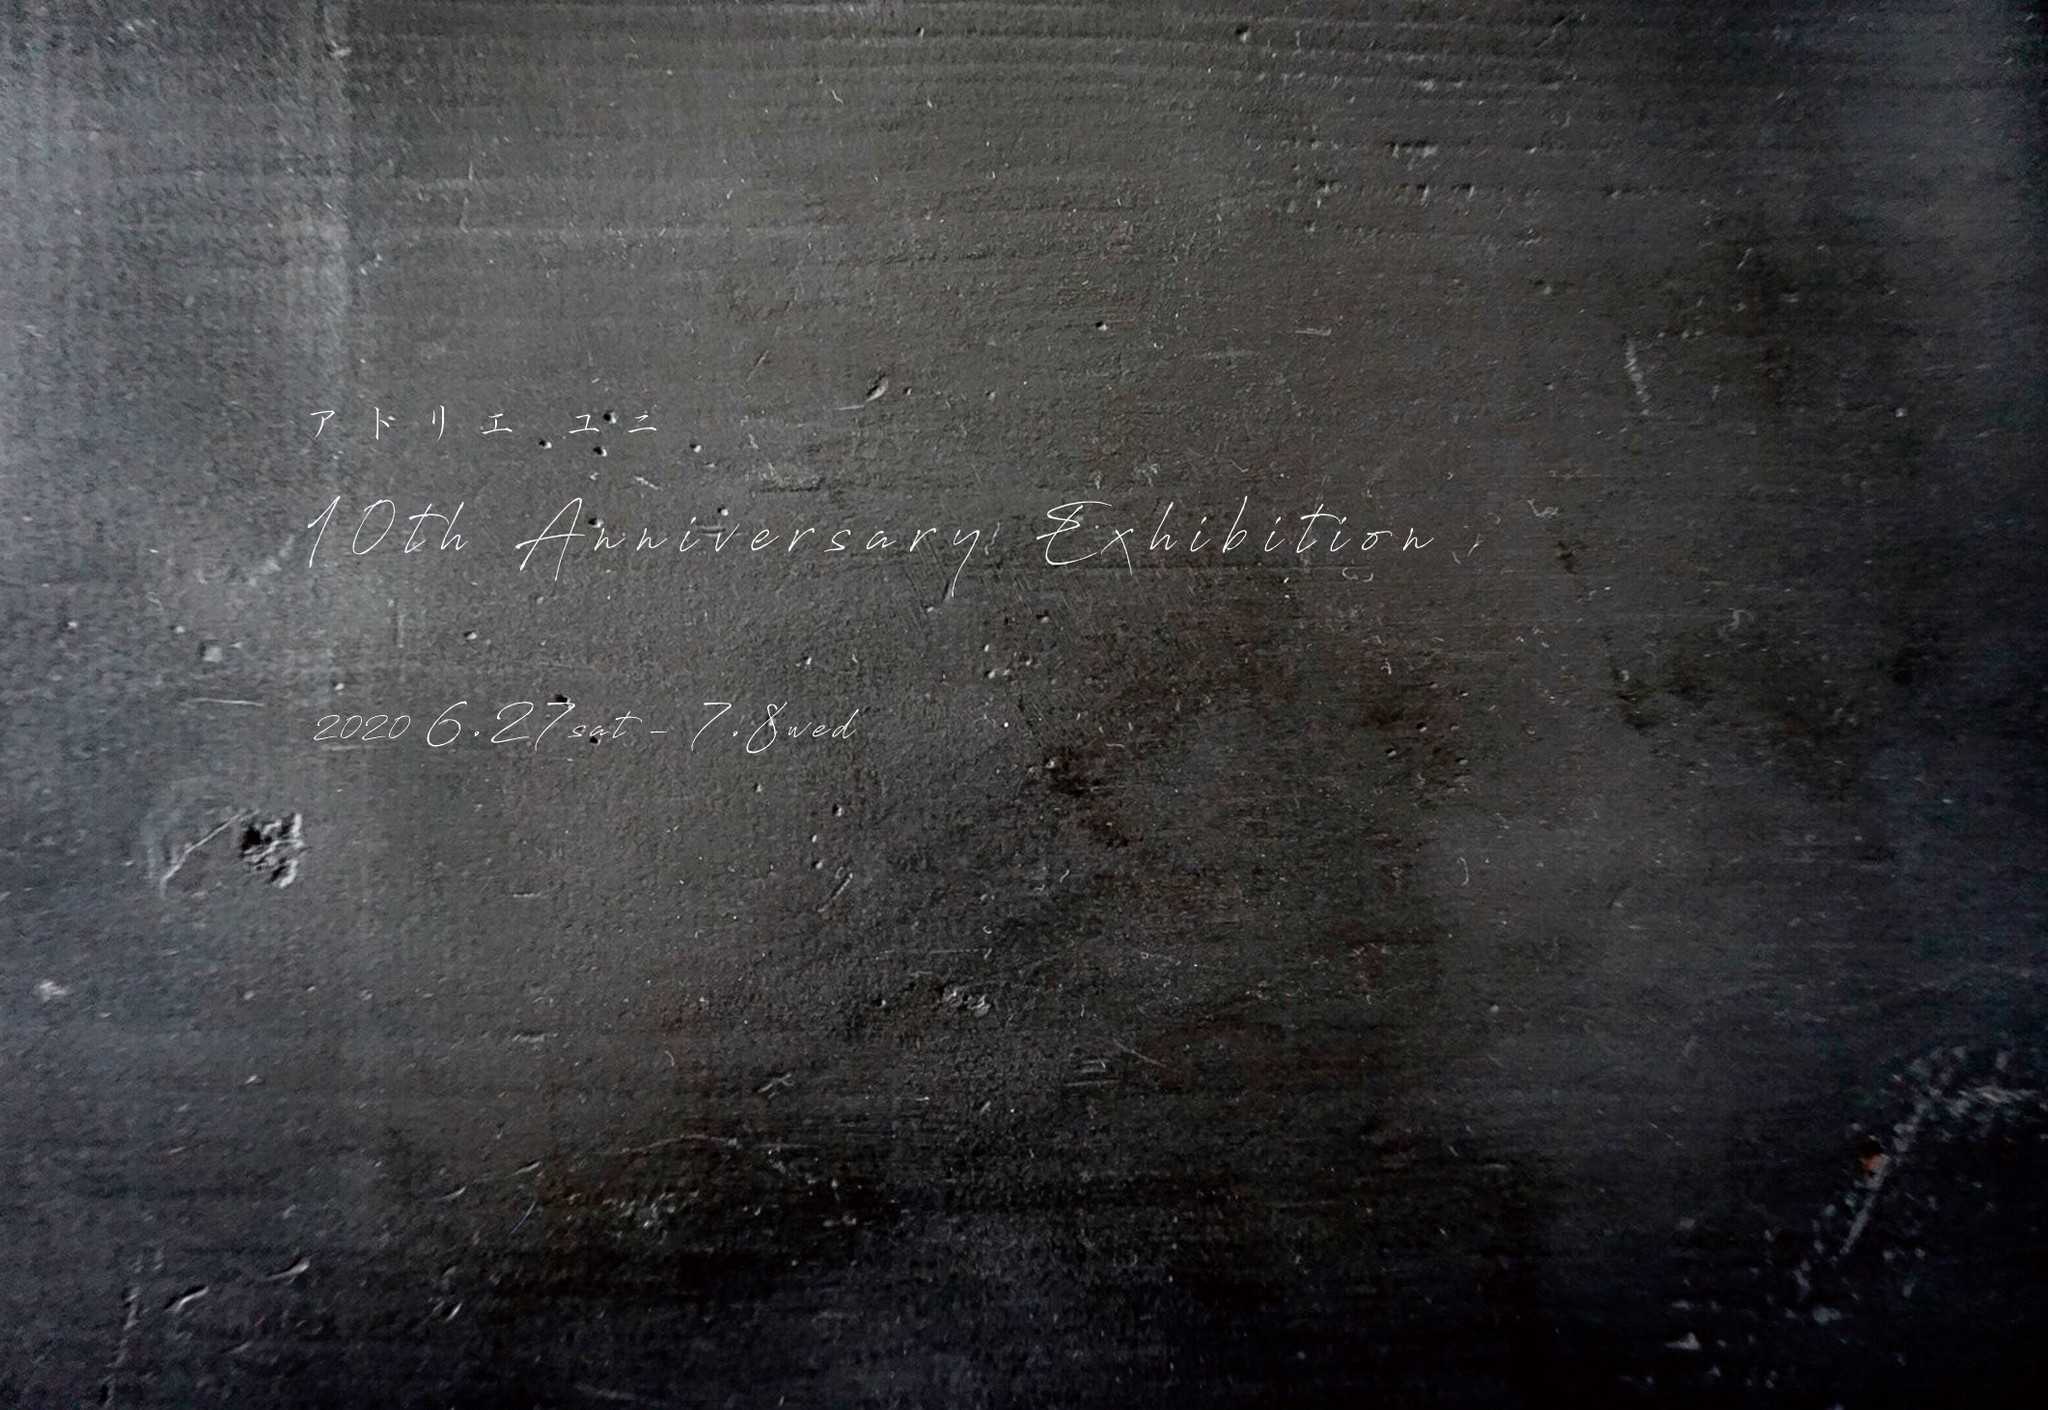 次回企画展 10th Anniversary Exhibition